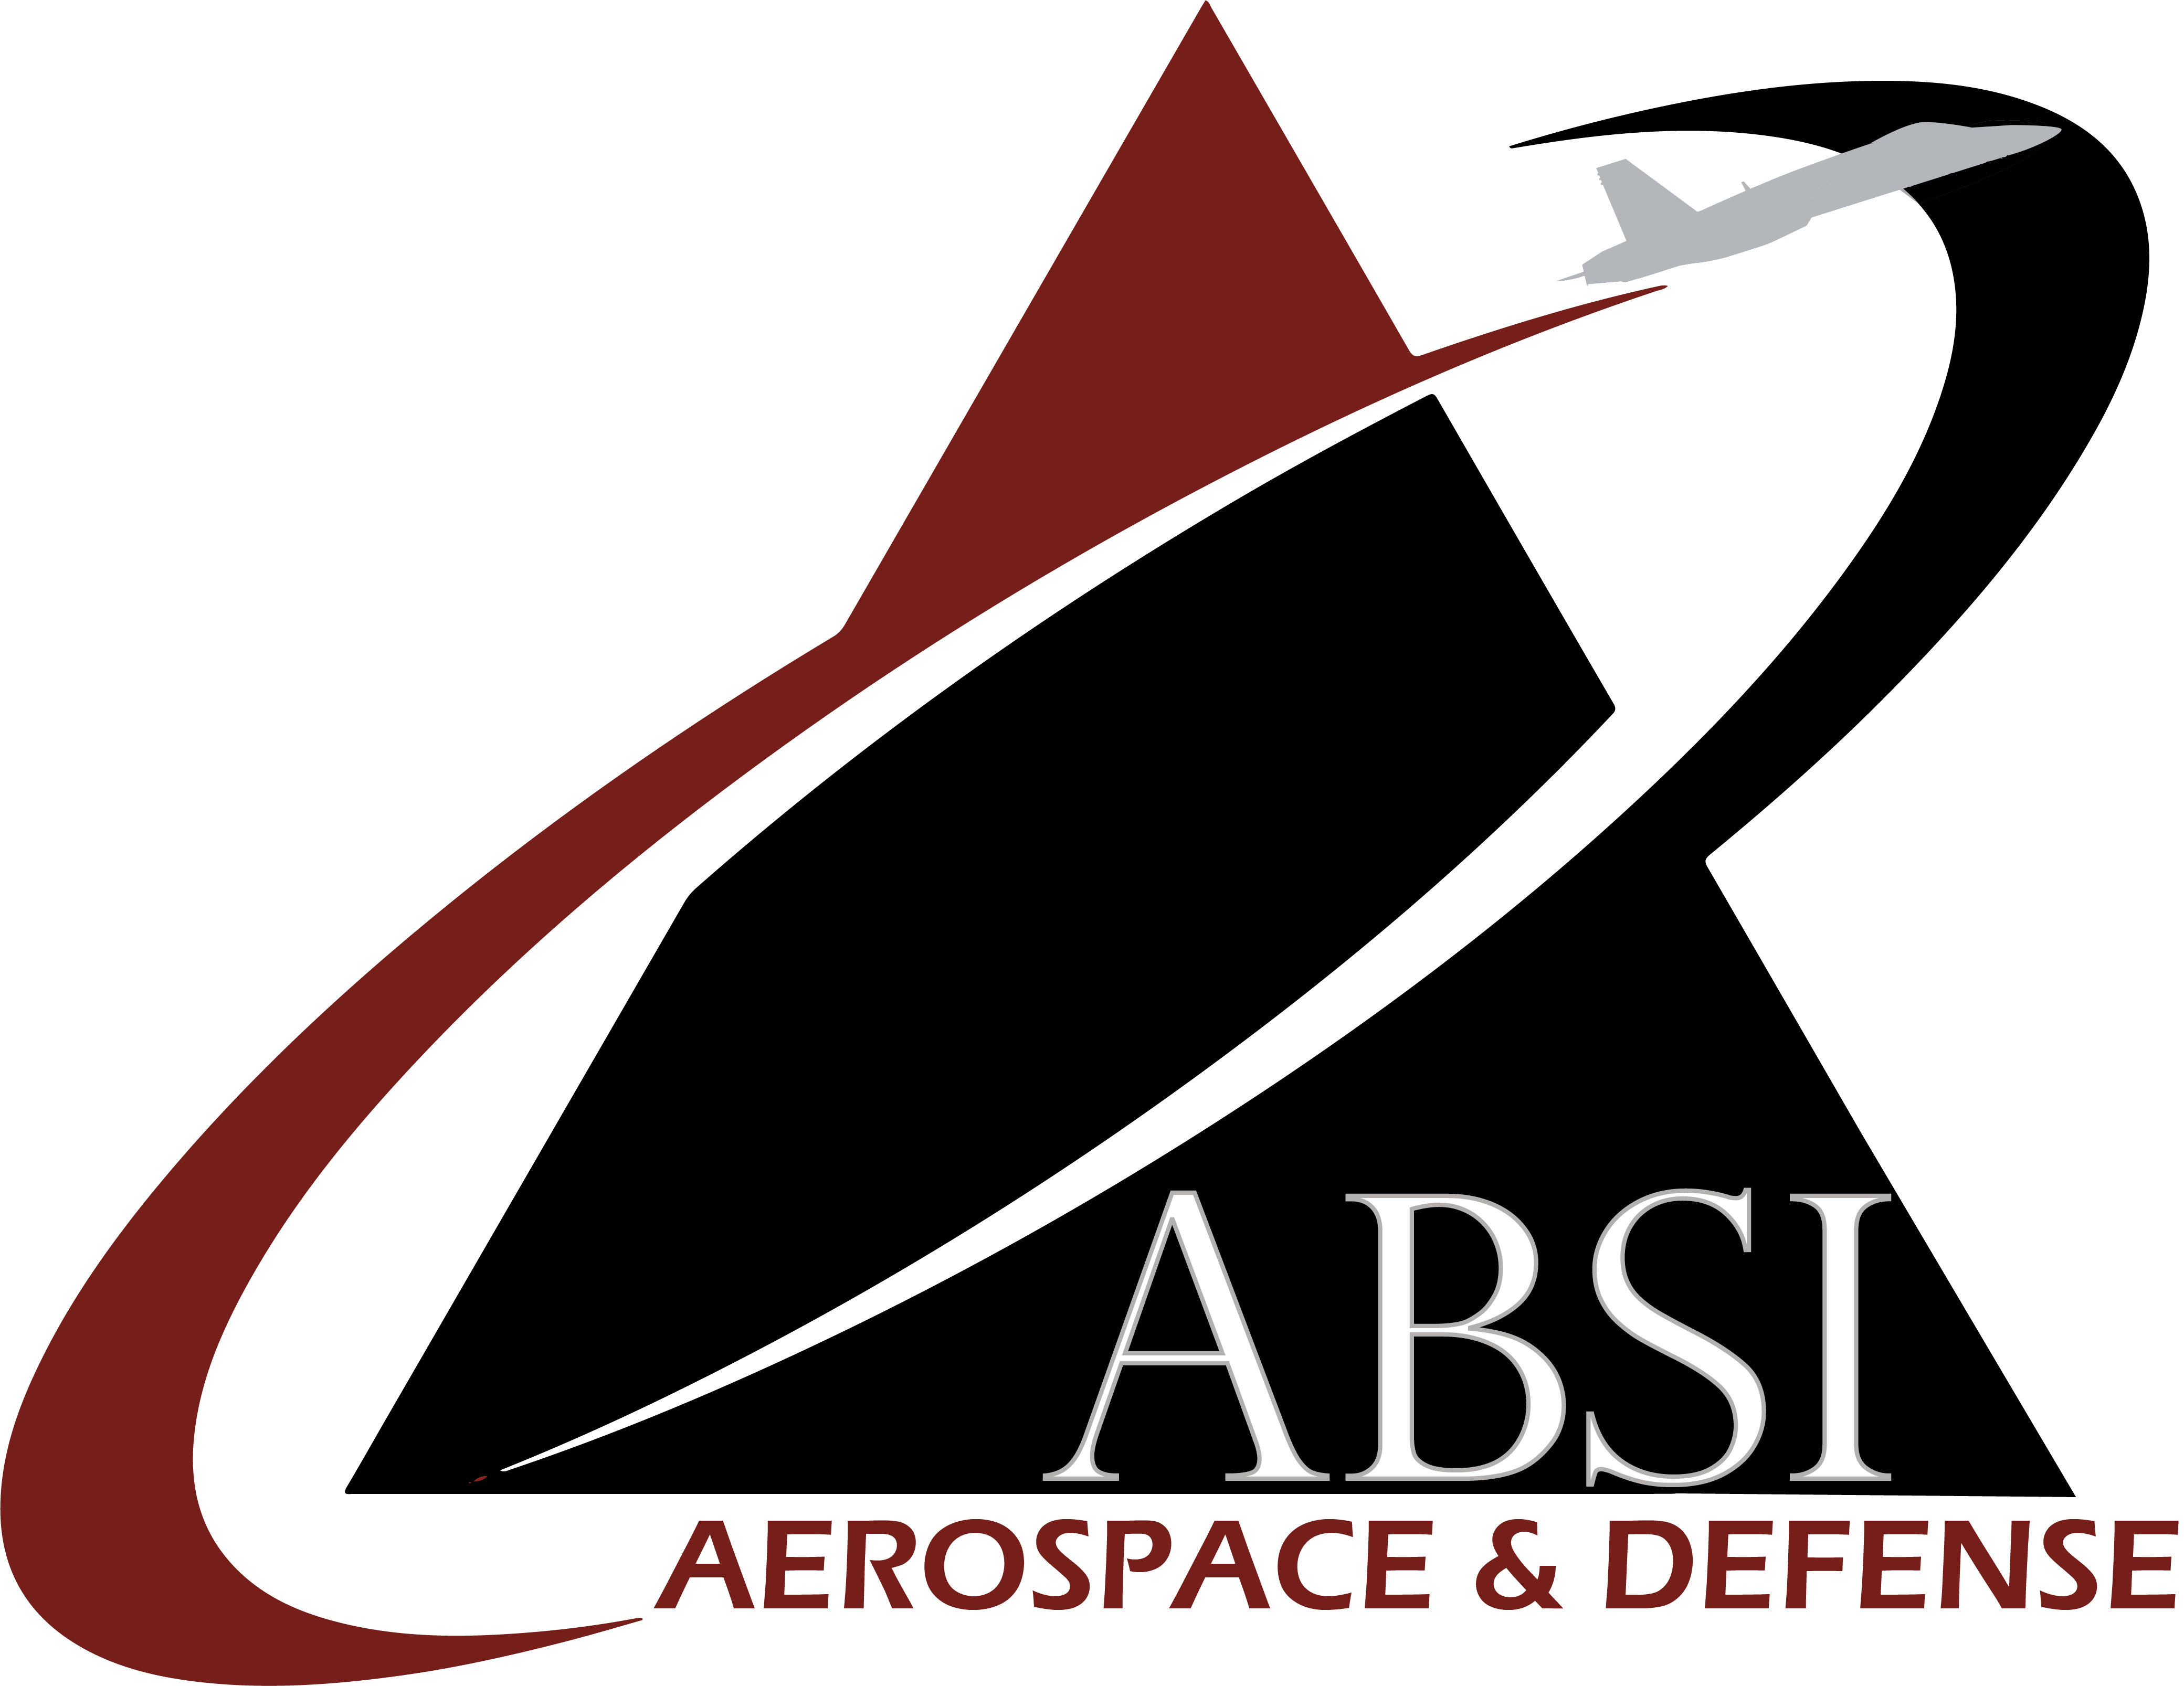 ABSI Aerospace & Defense